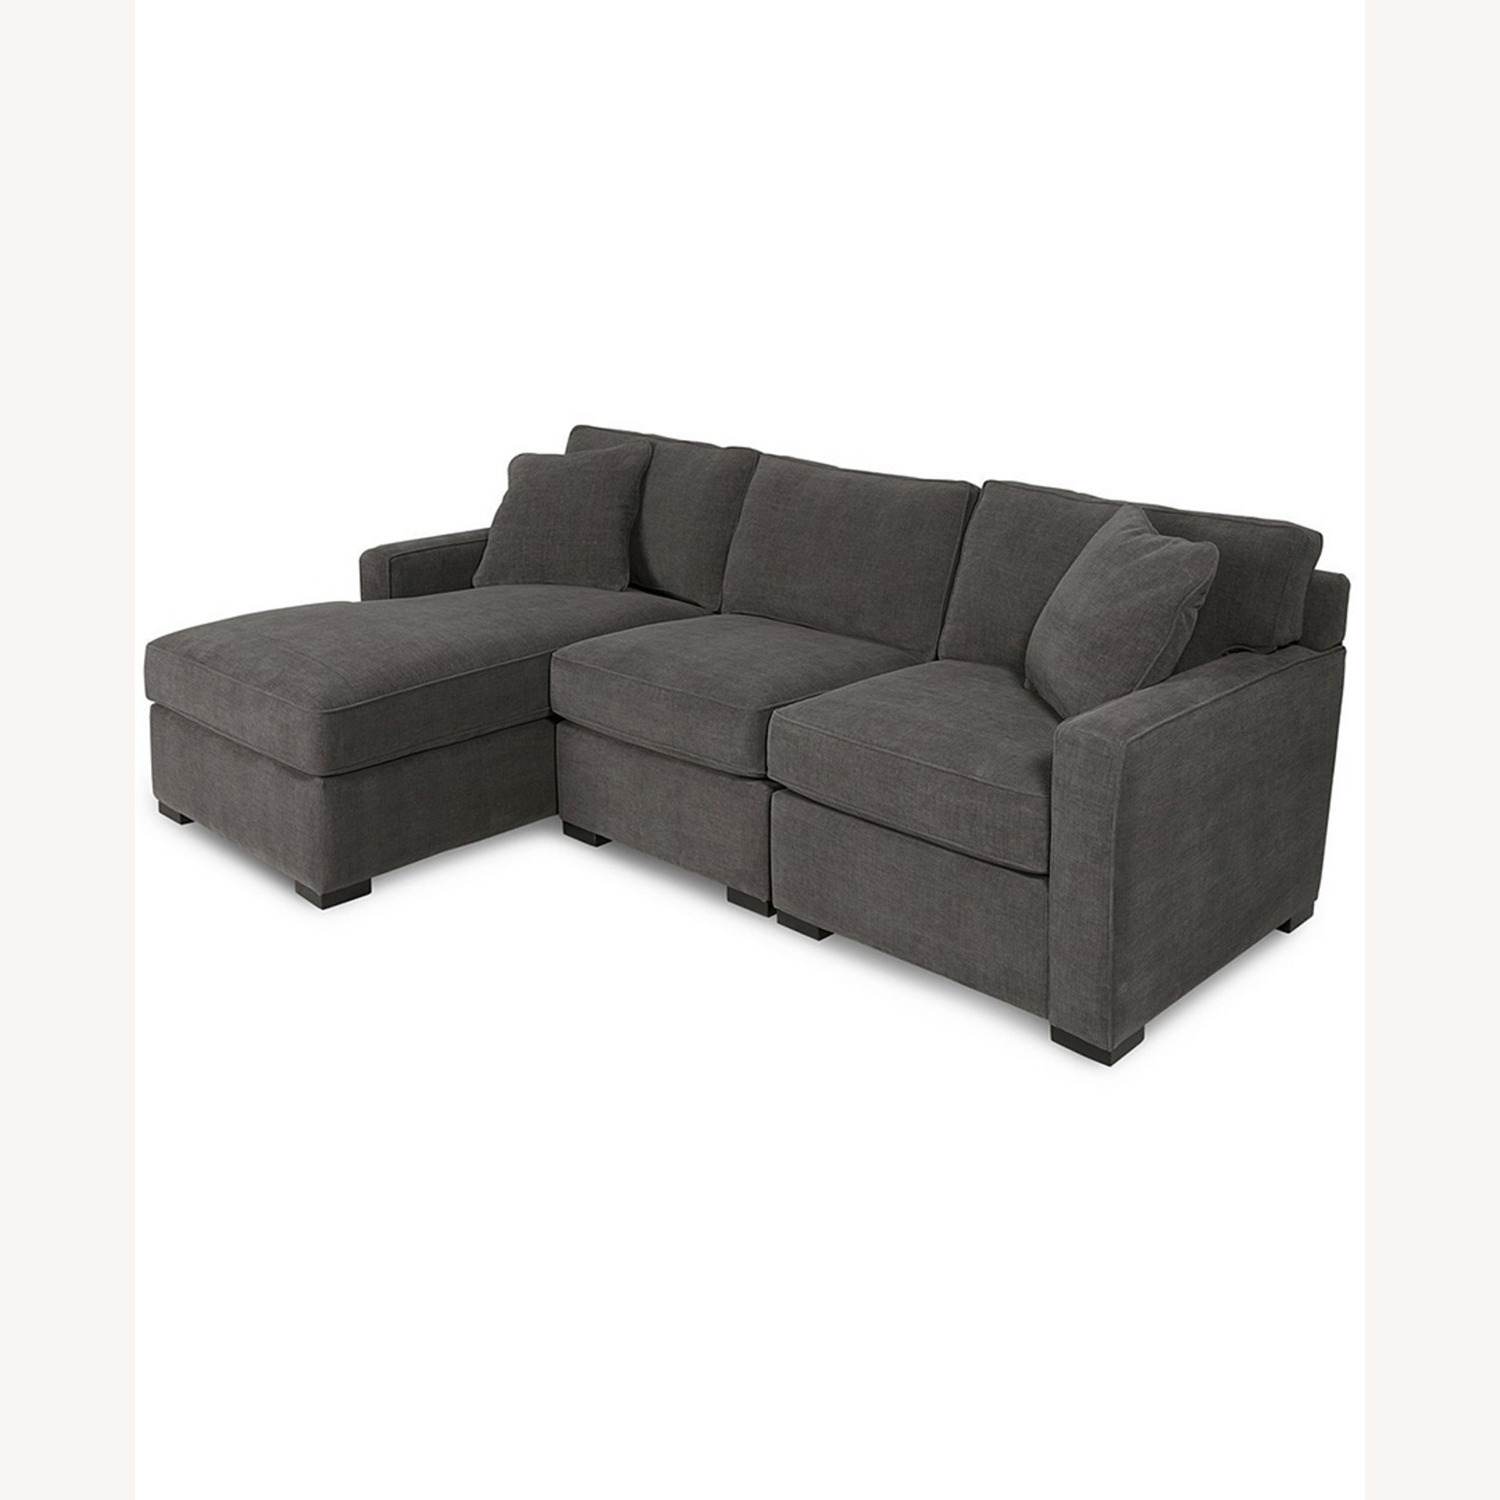 Macy's 3 Piece Sectional Sofa with Chase - image-1